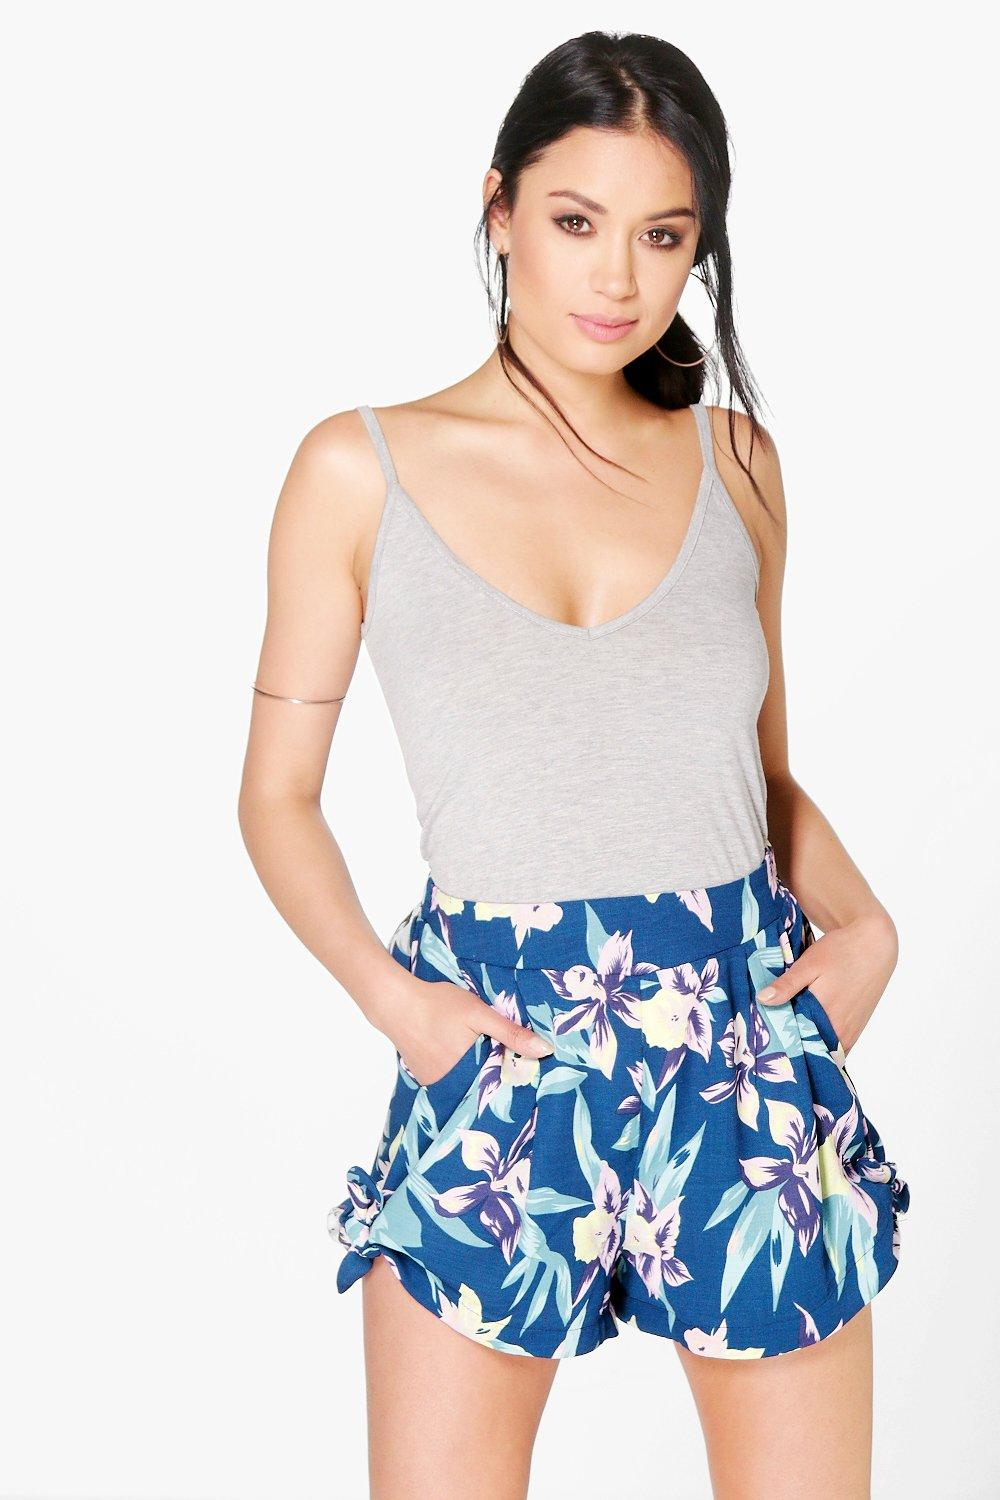 Tropical Floral Tie Side Shorts - navy